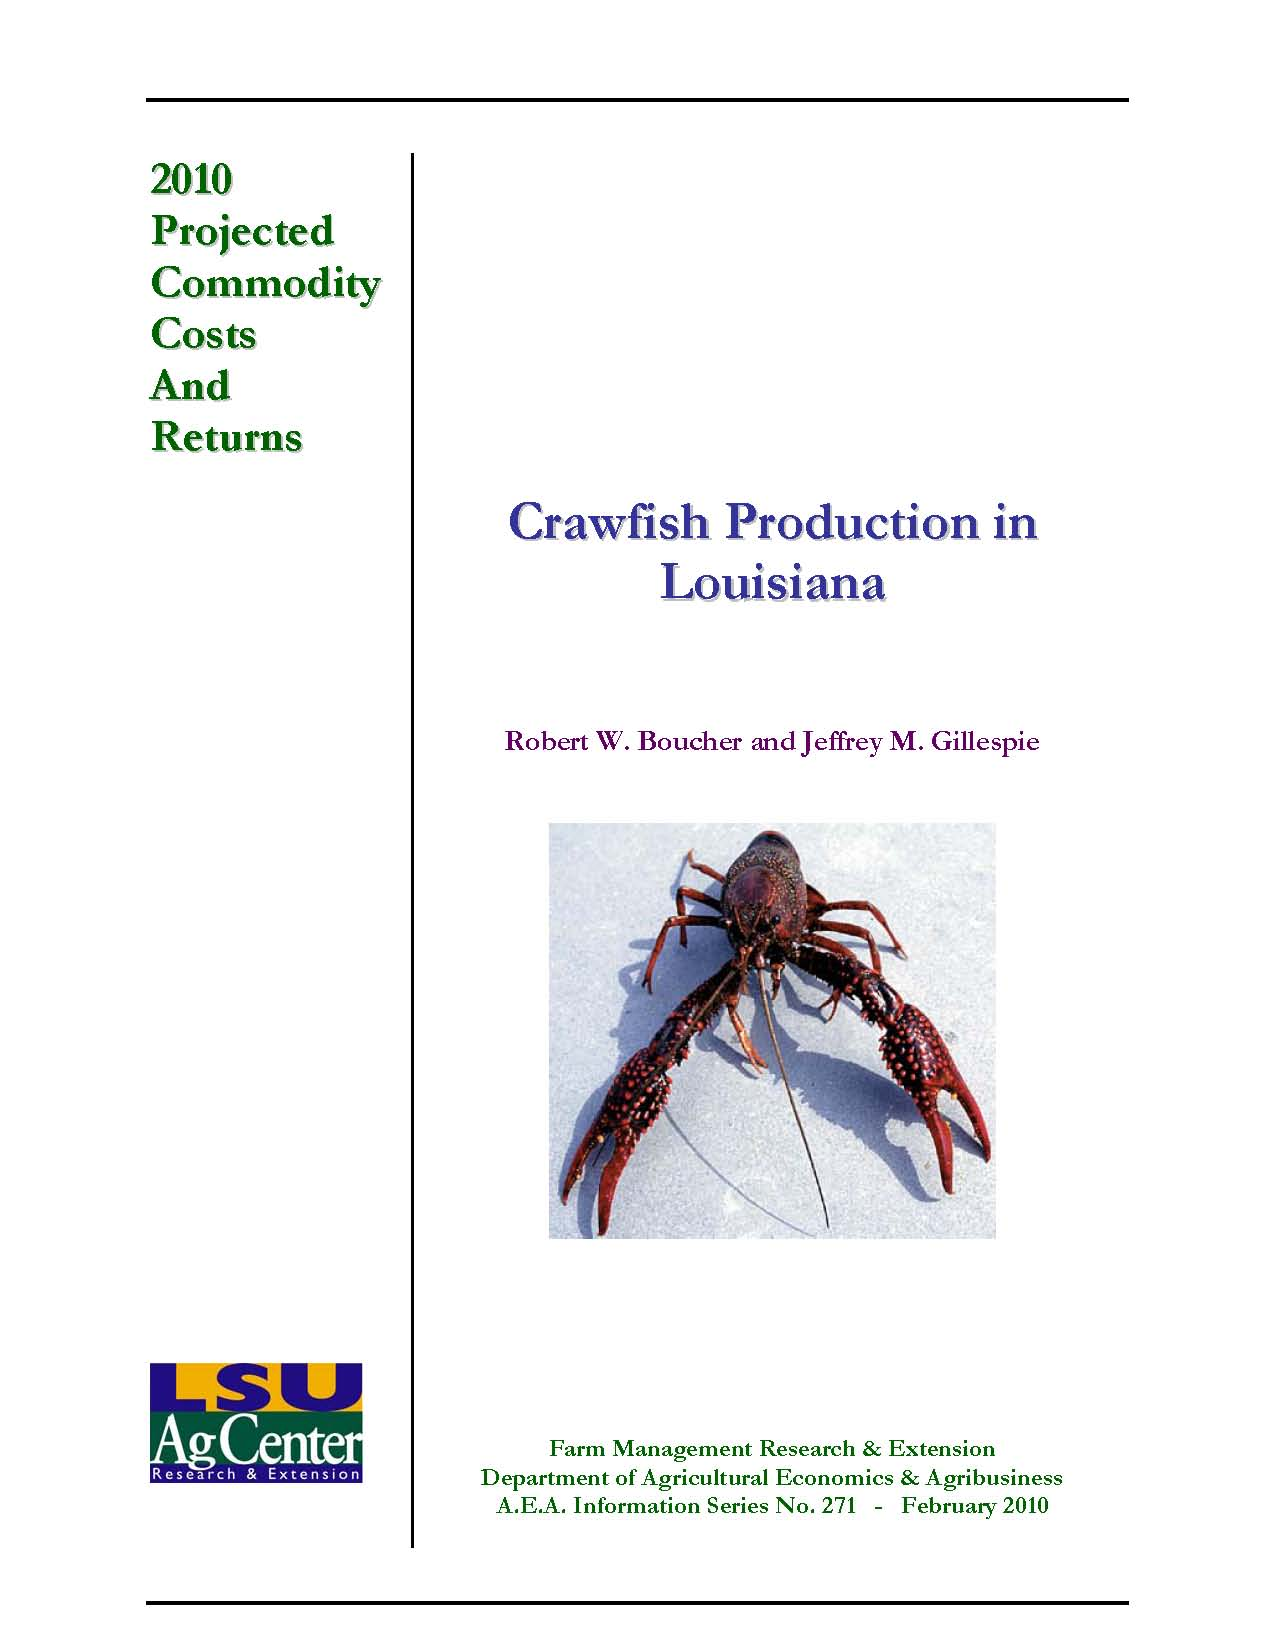 Projected Costs and Returns for Crawfish Production in Louisiana 2010